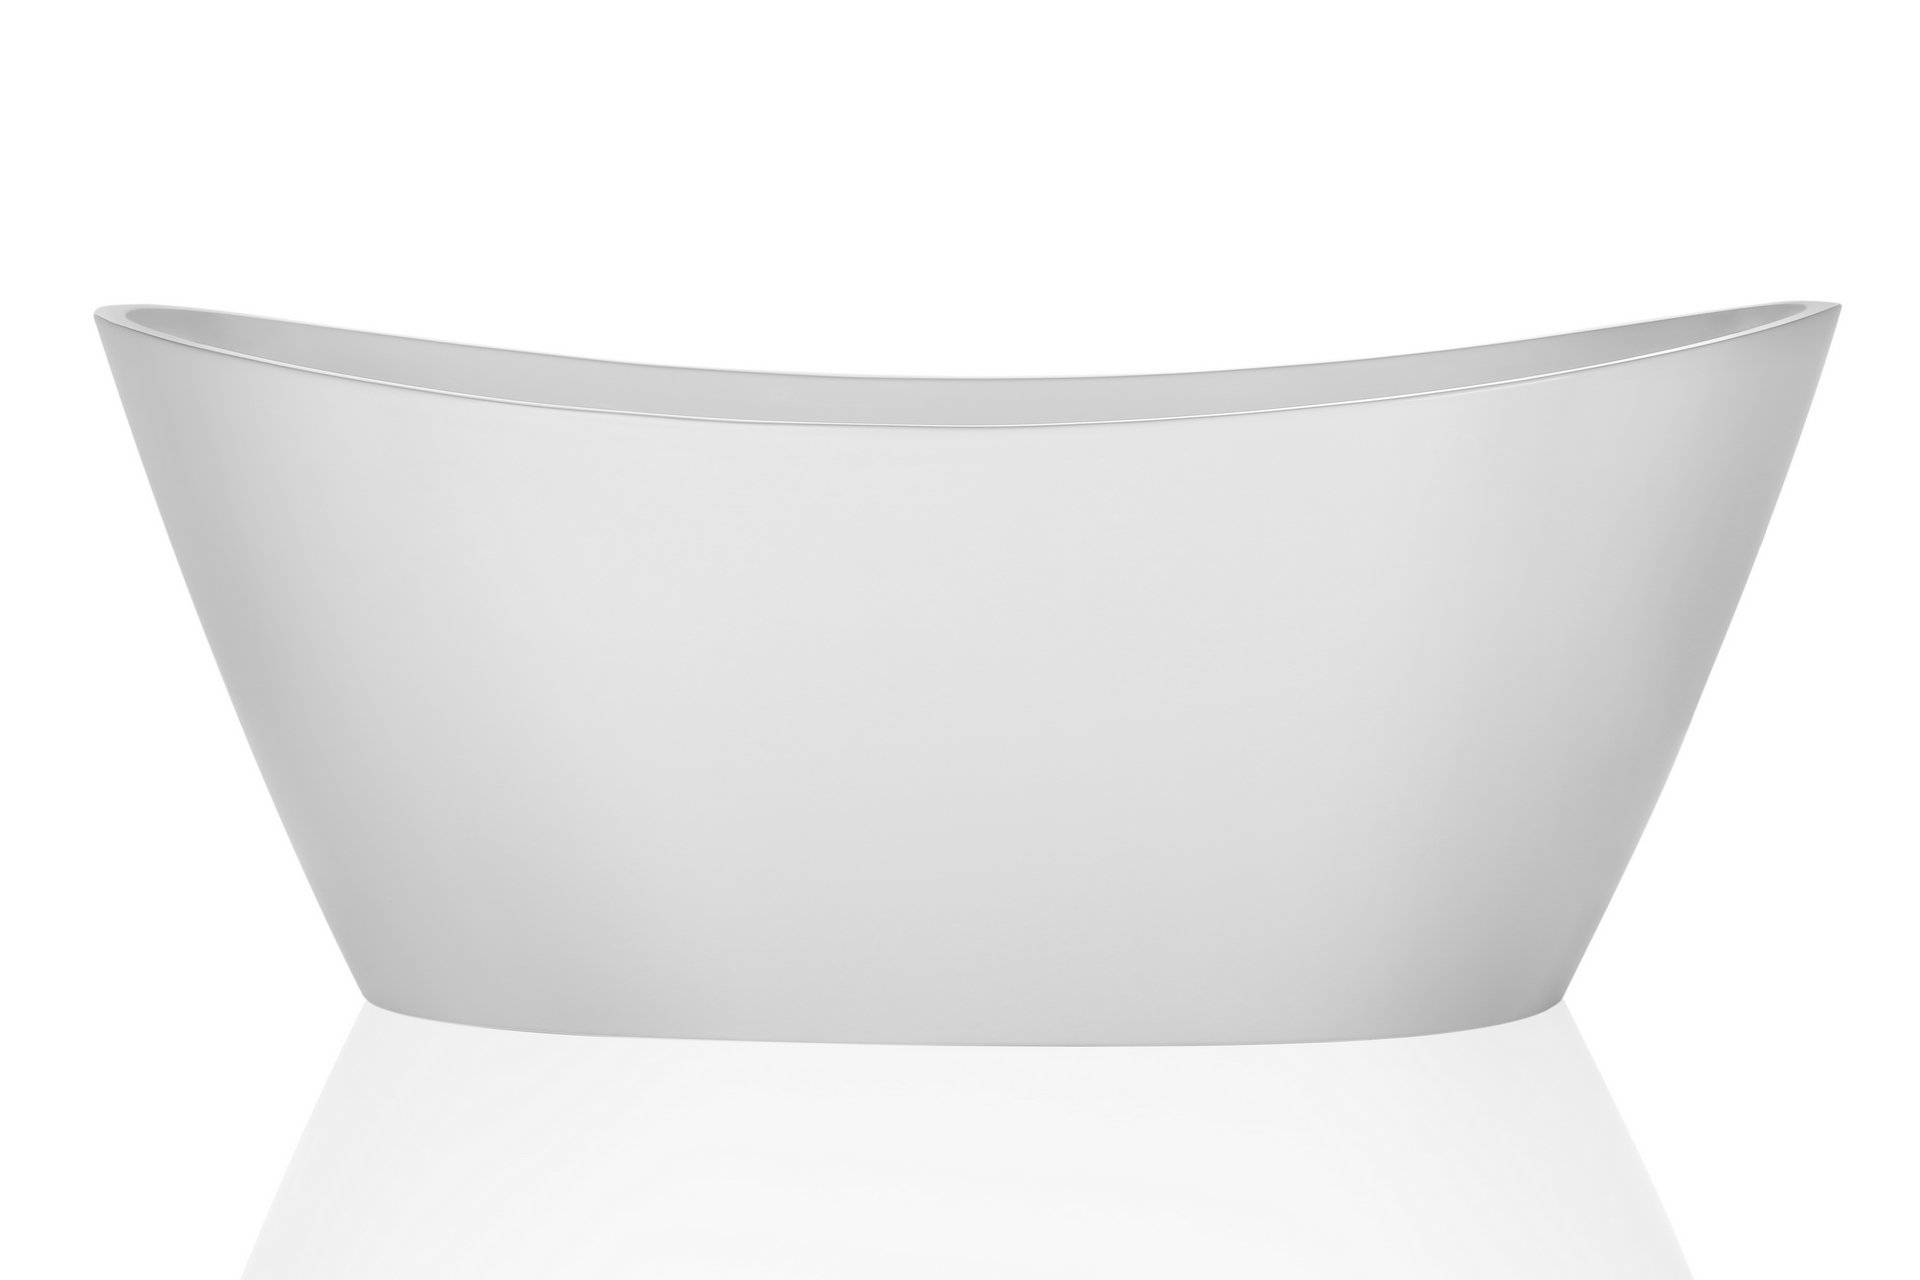 Empava 67'' Luxury Freestanding Acrylic Soaking SPA Tub Modern Stand Alone Bathtubs with Custom Contemporary Design EMPV-FT1518 by Empava